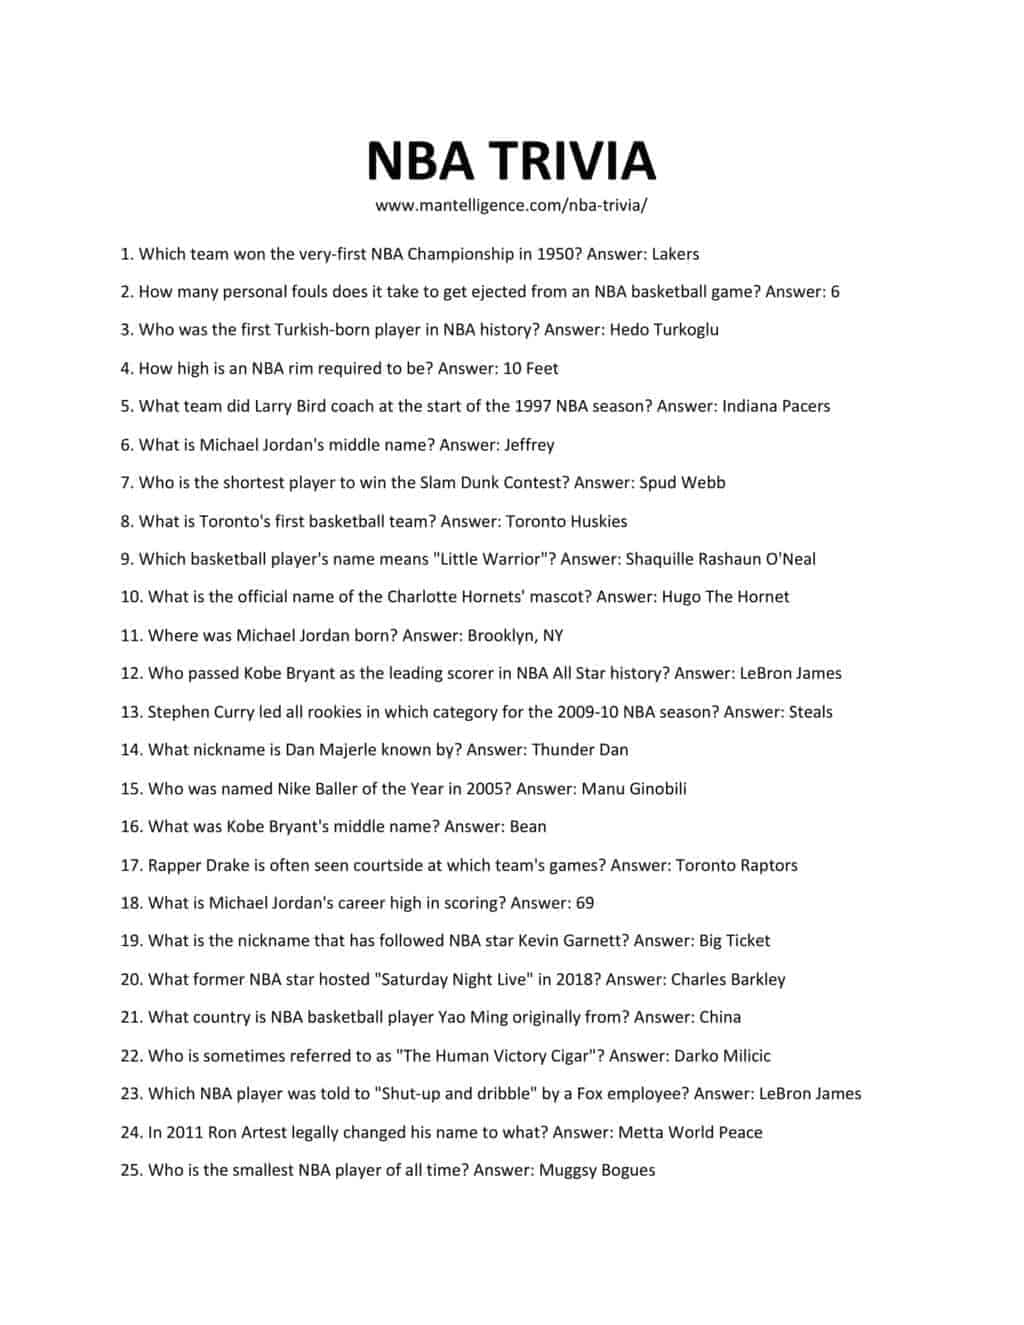 Downloadable and Printable List of NBA Trivia